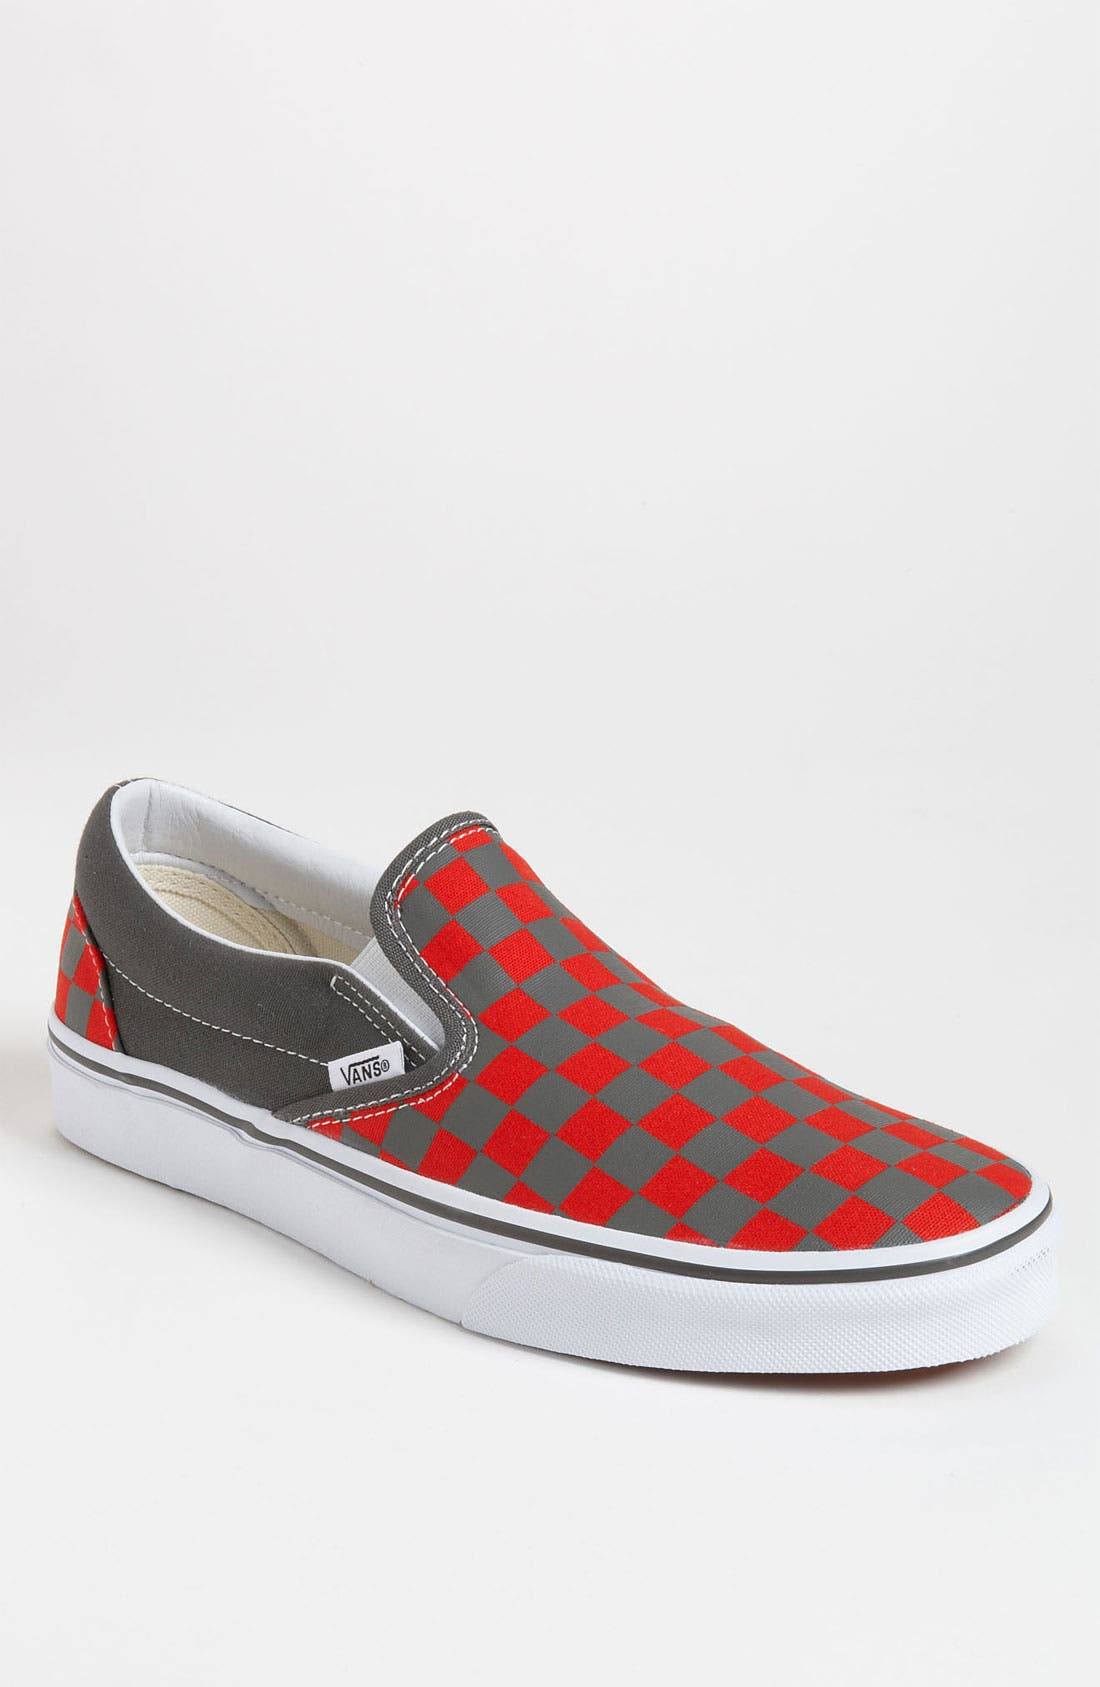 Alternate Image 1 Selected - Vans 'Checkerboard' Slip-On (Men)